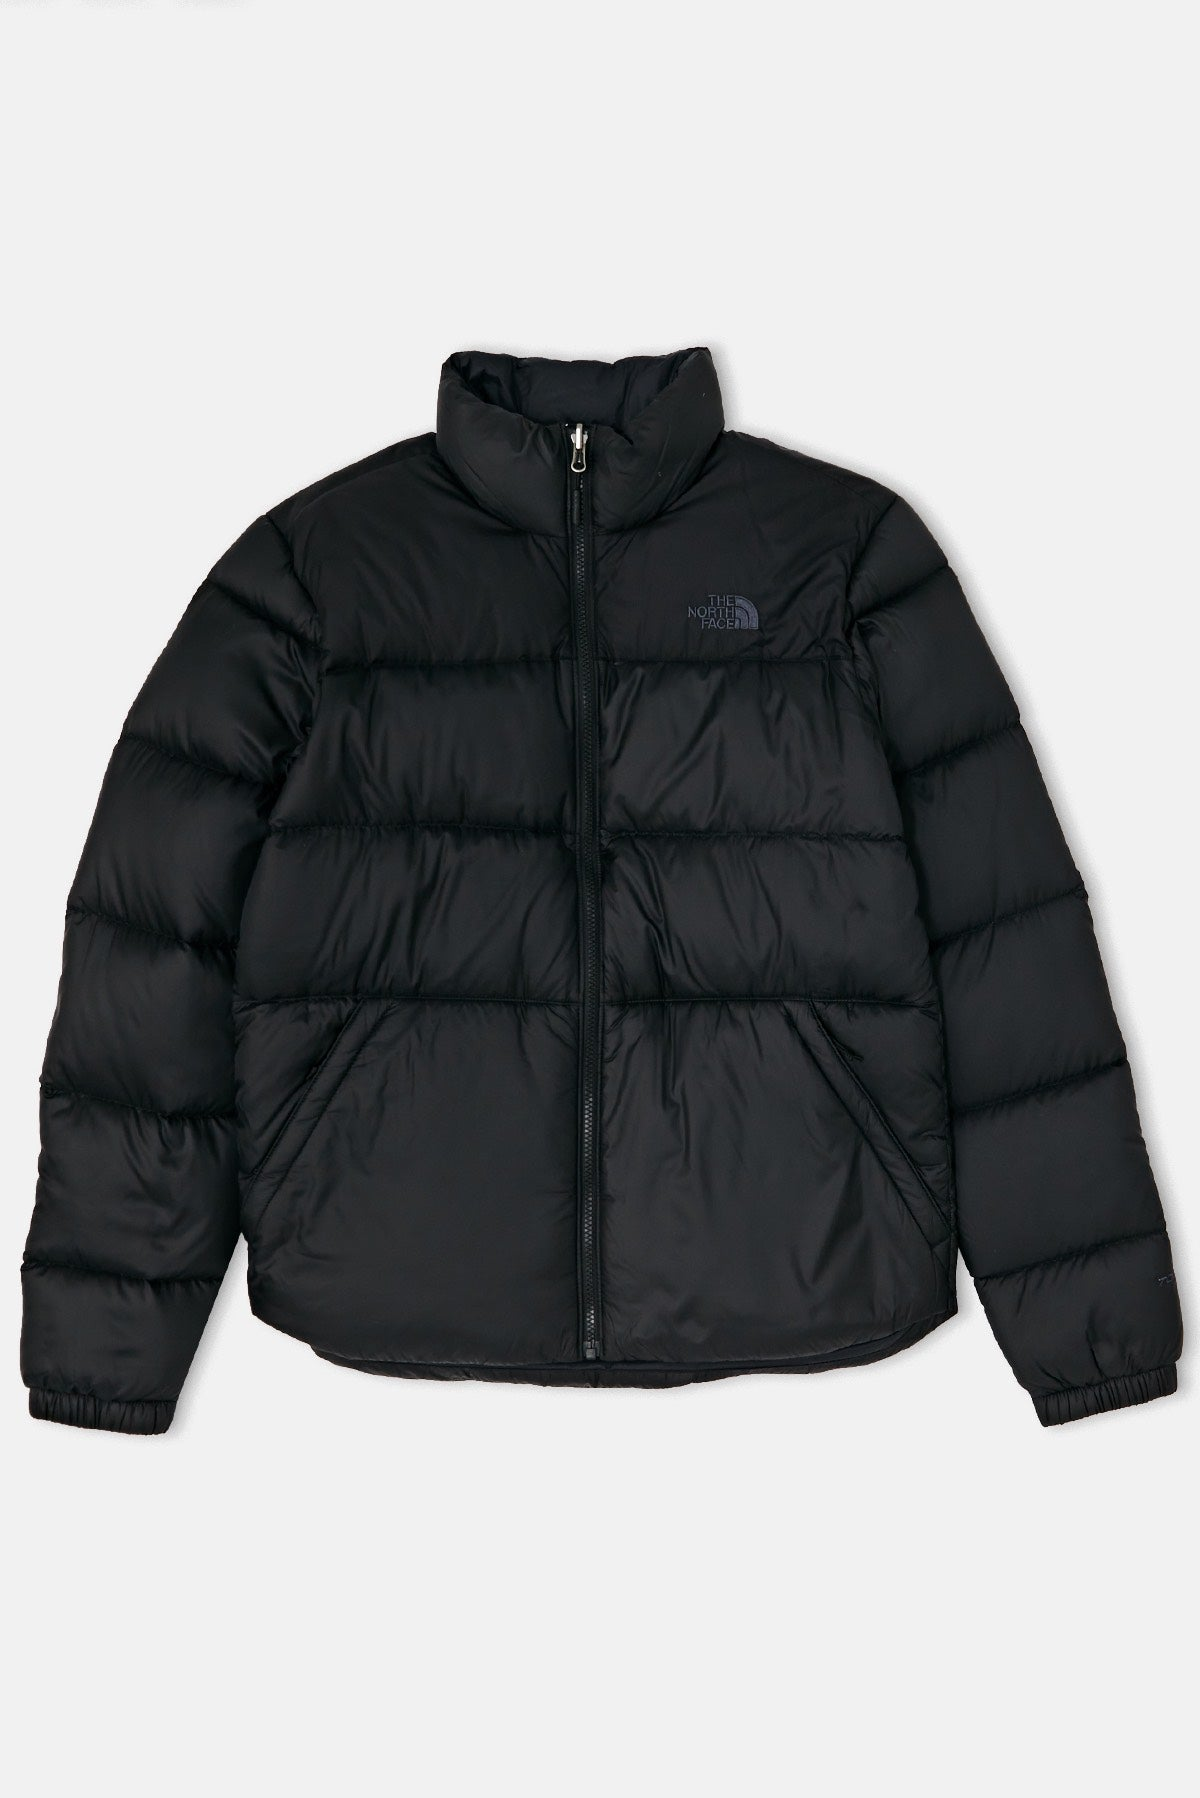 c57c03410e North Face Nuptse III Down Jacket available from Priory